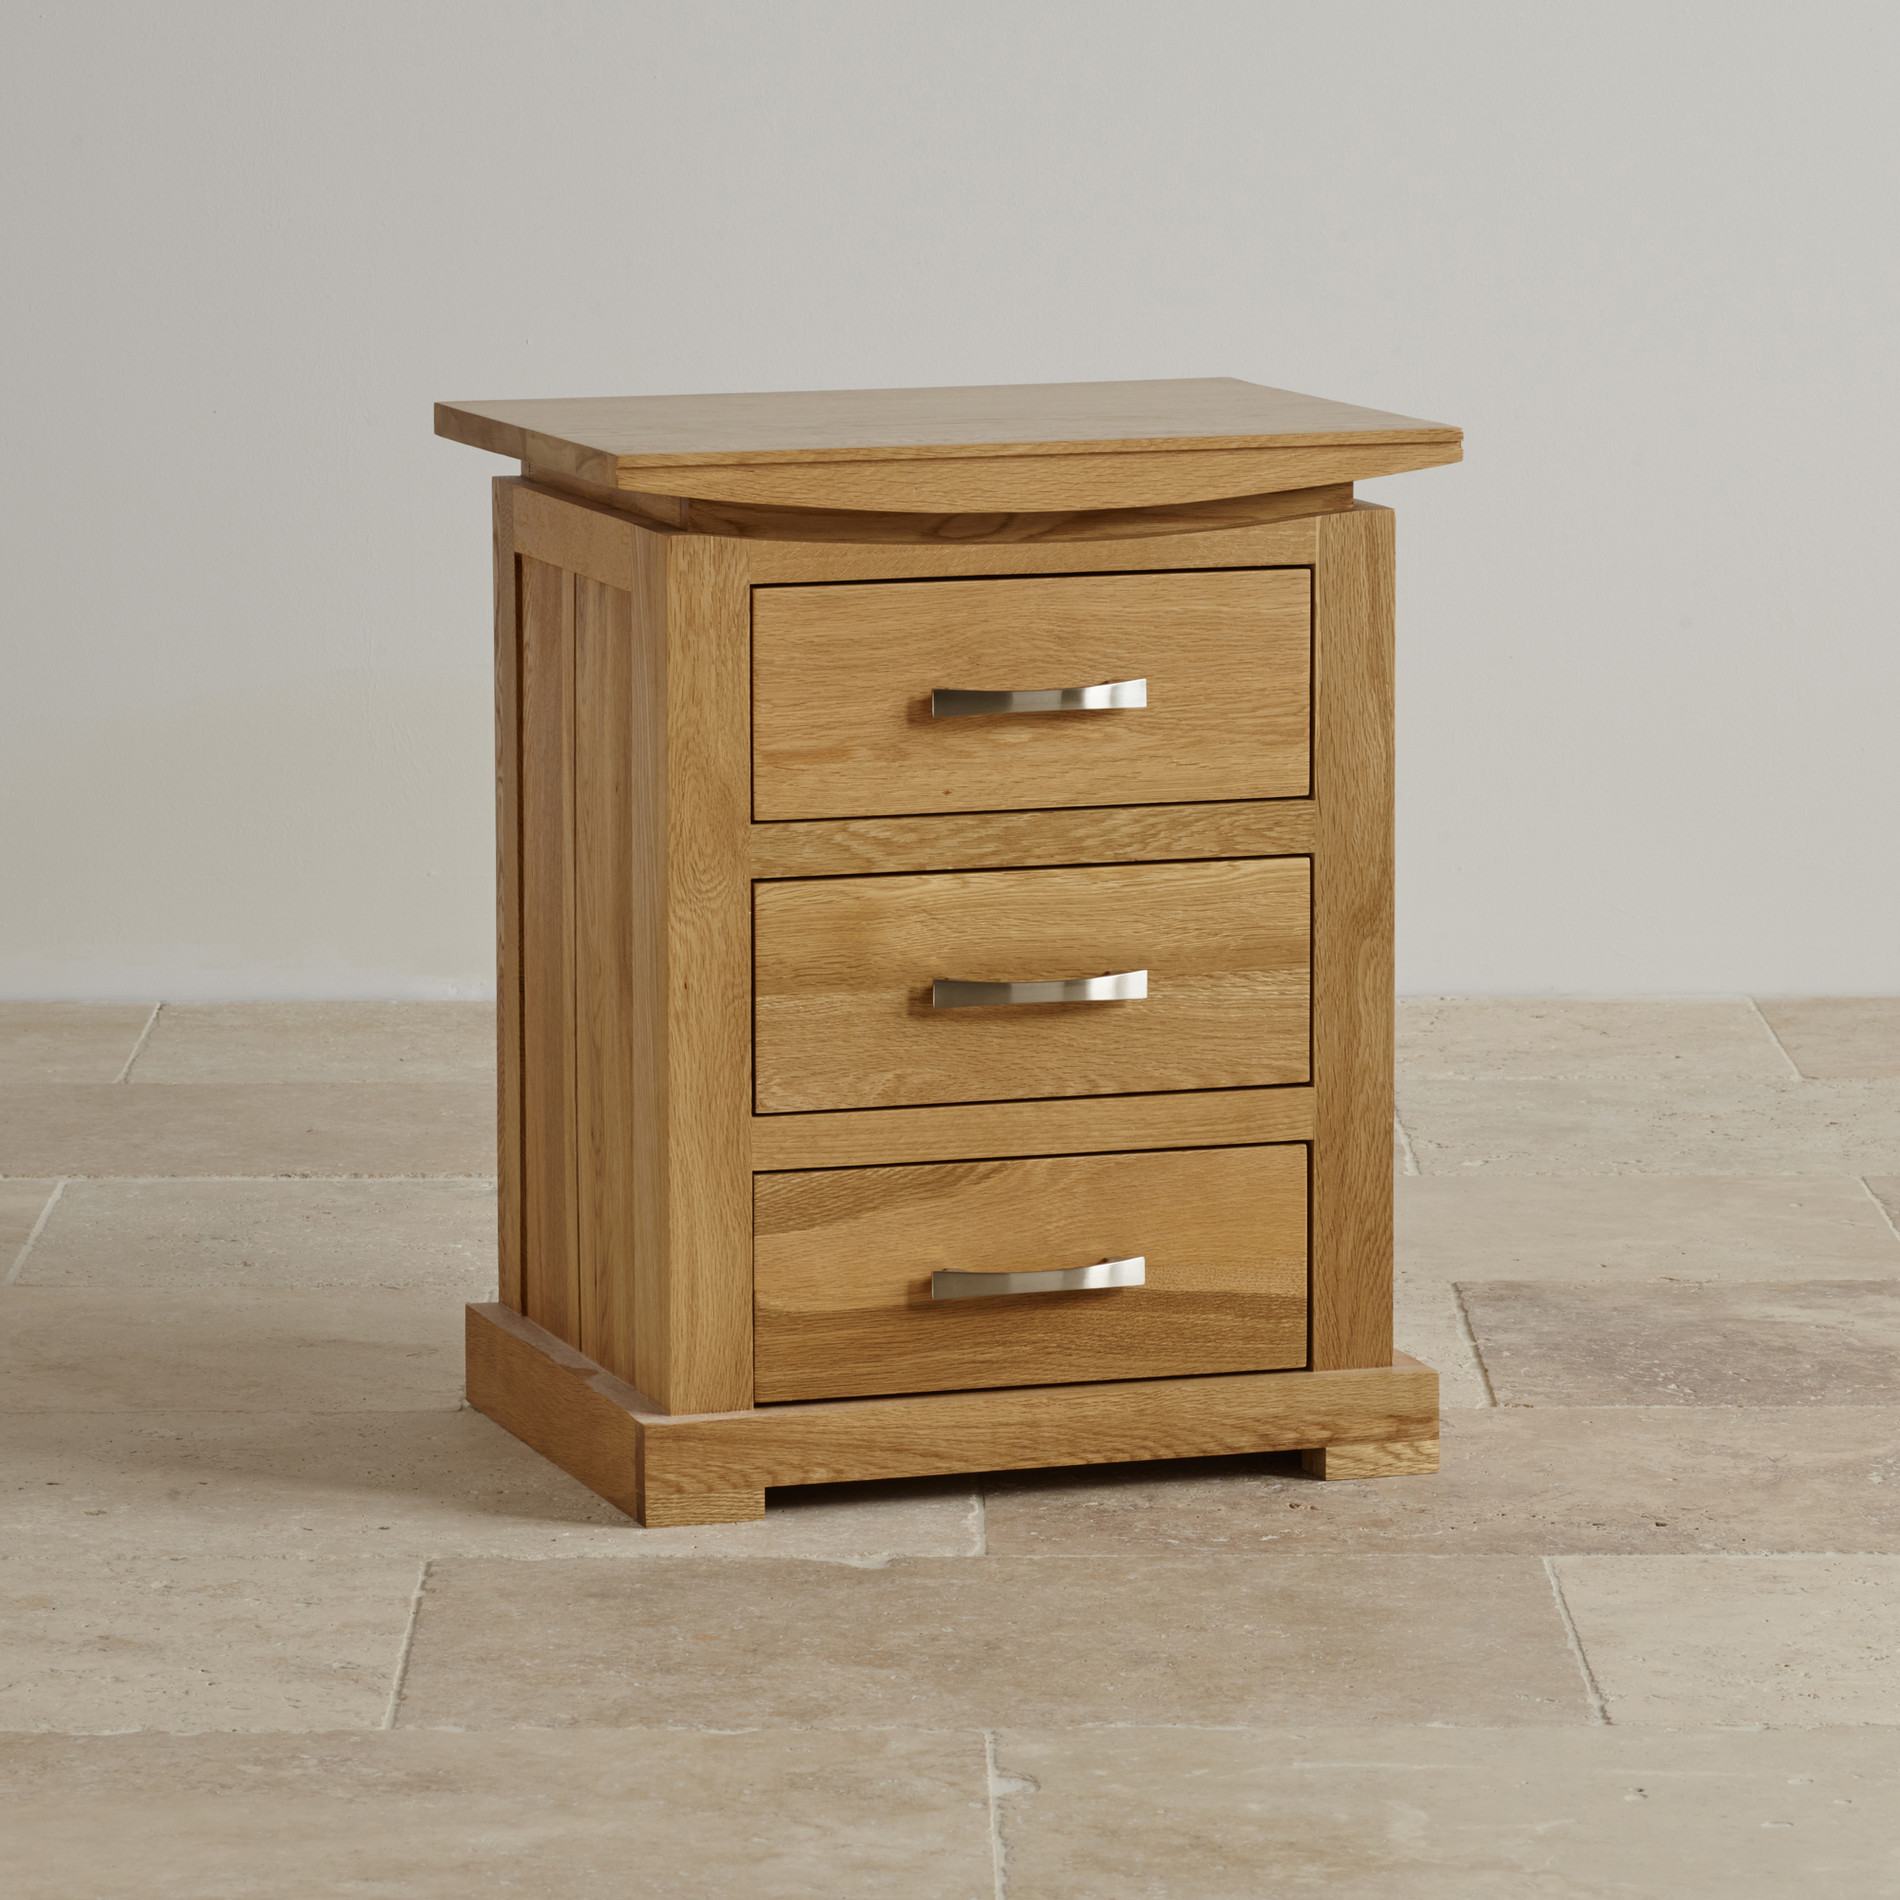 Solid Wood Dining Room Set Tokyo 3 Drawer Bedside Table In Solid Oak Oak Furniture Land